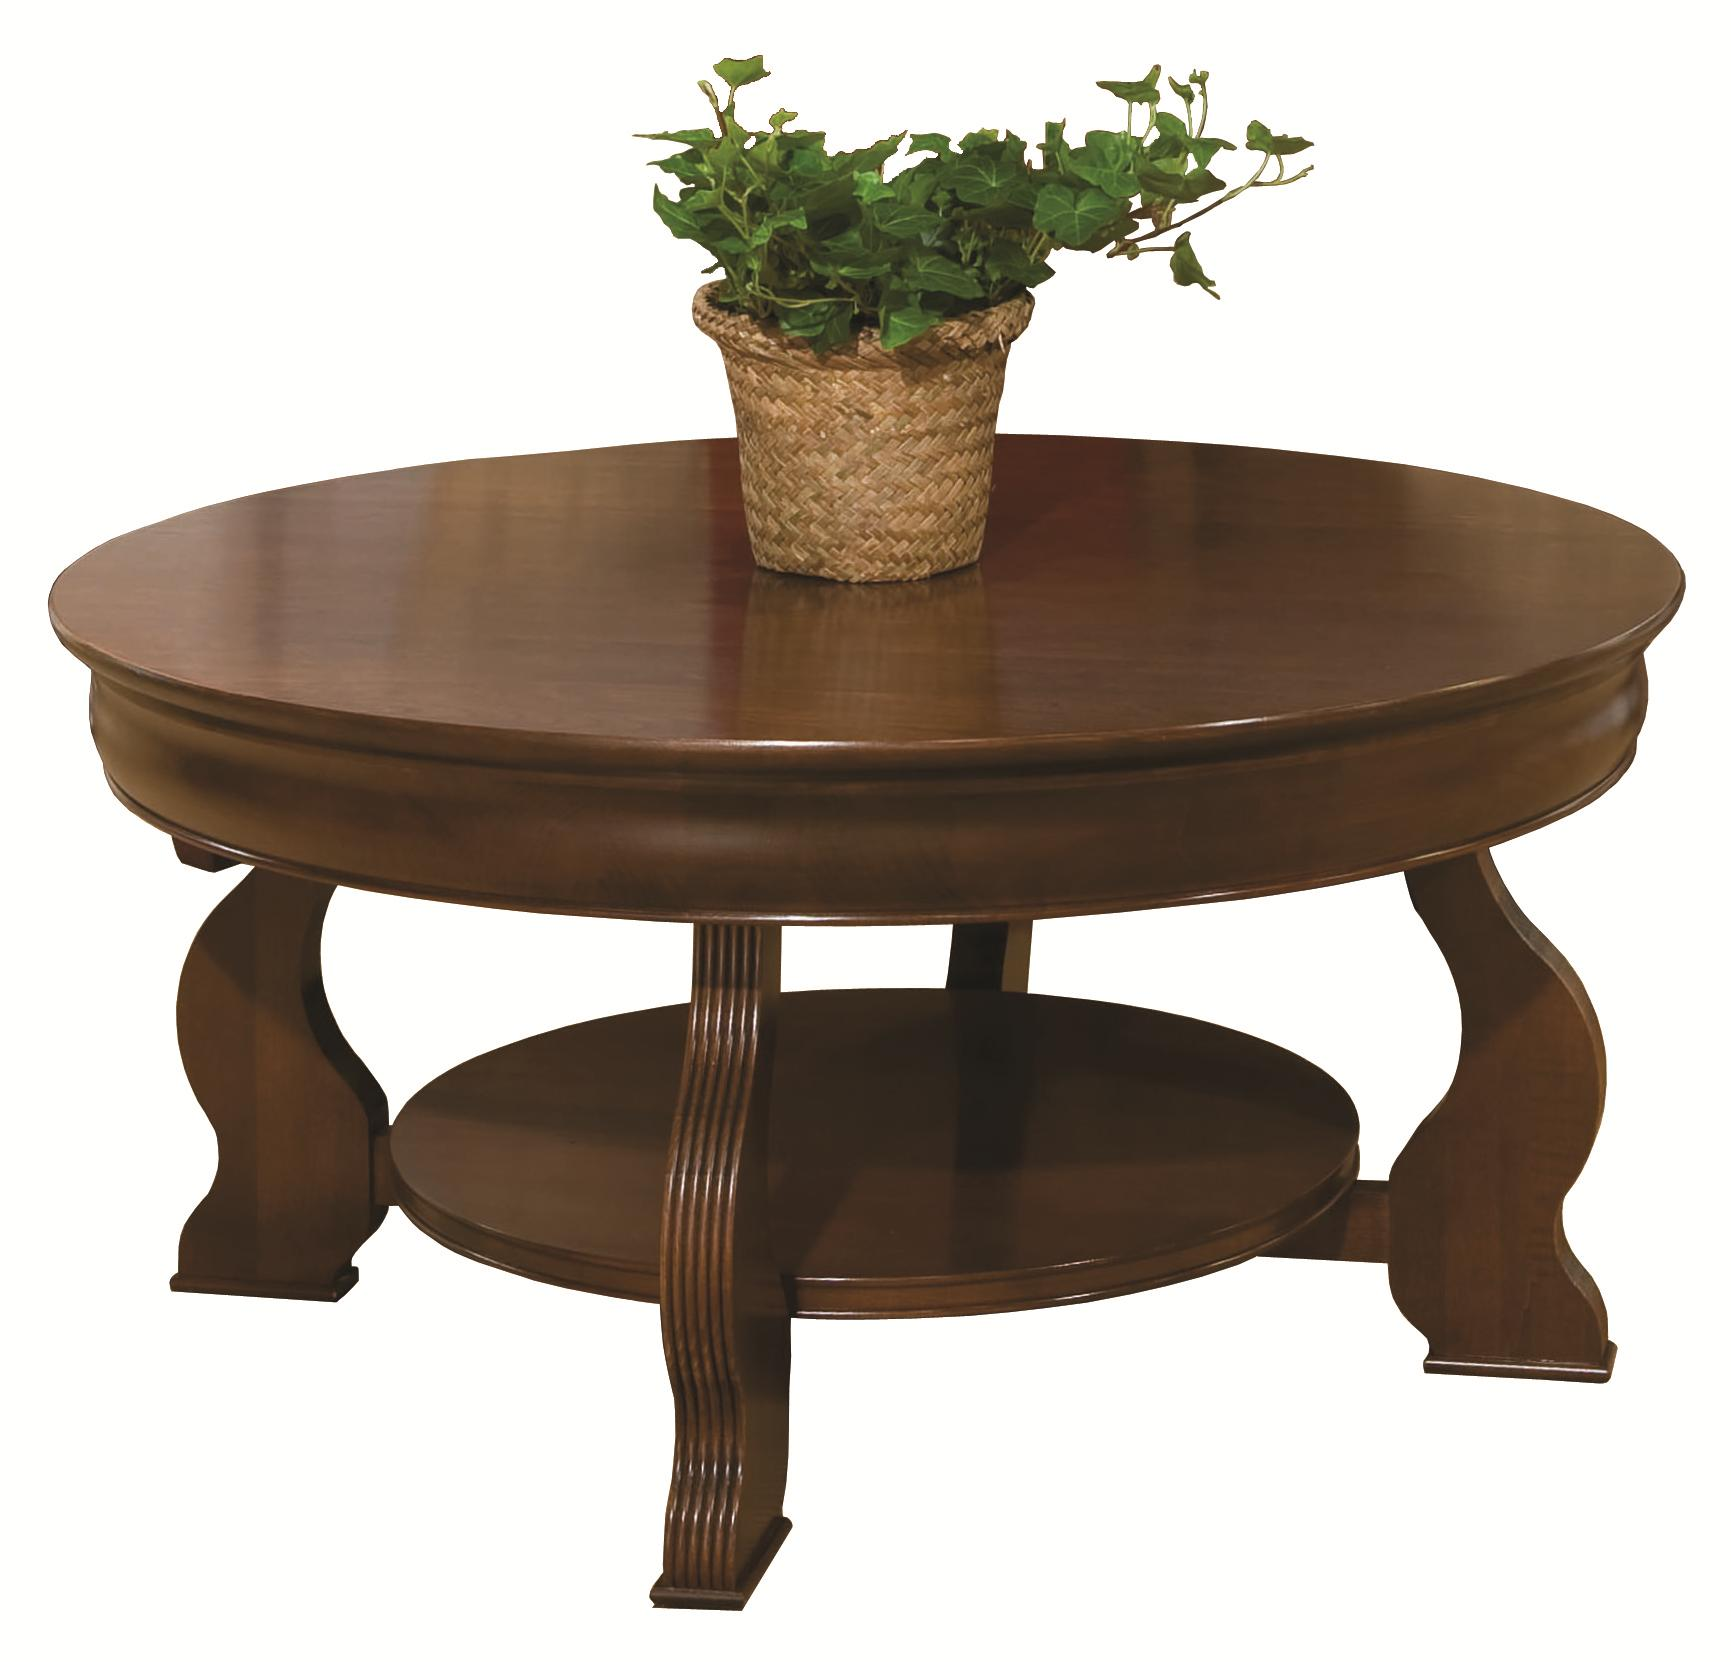 Occasional Tables Durham Louis Phillipe Round Cocktail Table by Durham at Stoney Creek Furniture